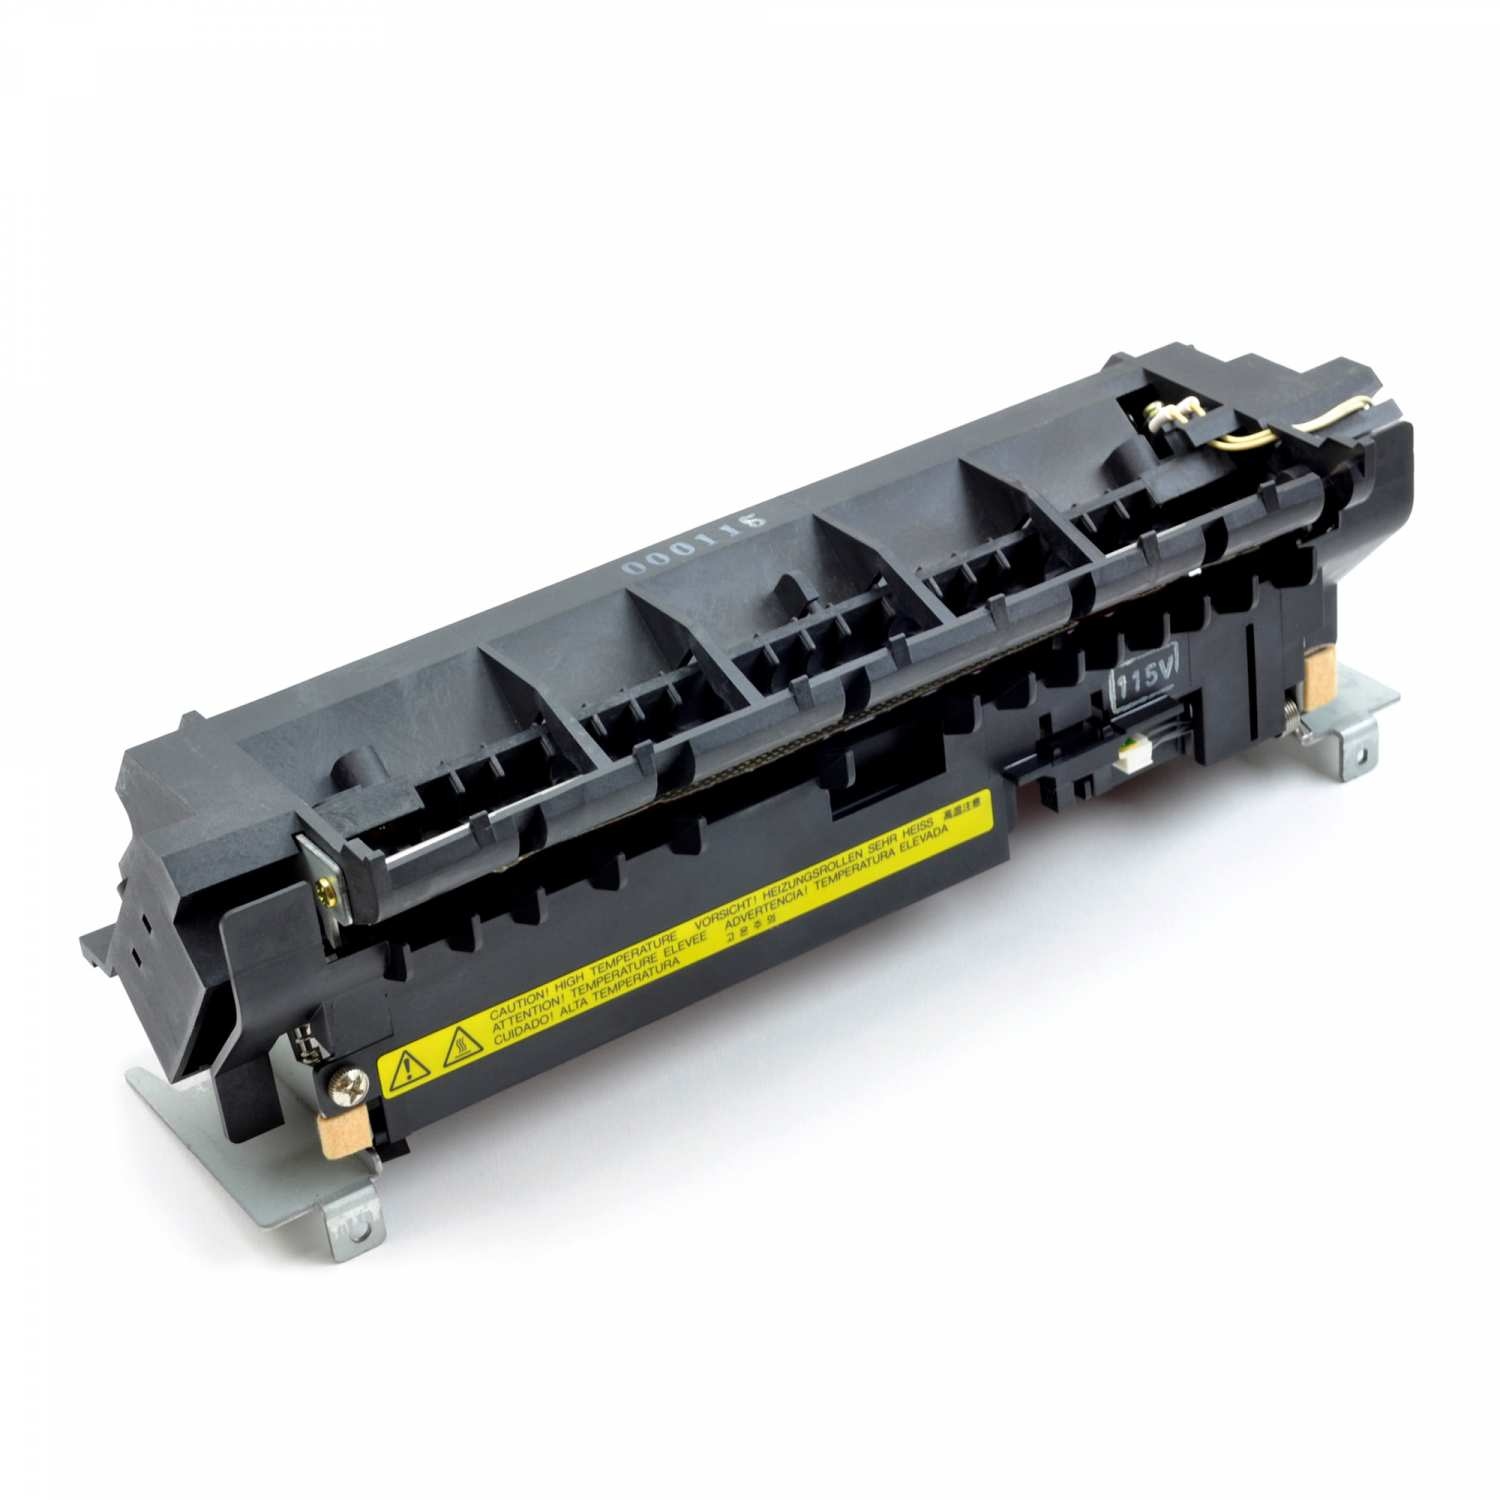 108R00093 Fuser Assembly (220V) Purchase for Xerox 4317, DocuPrint 4517